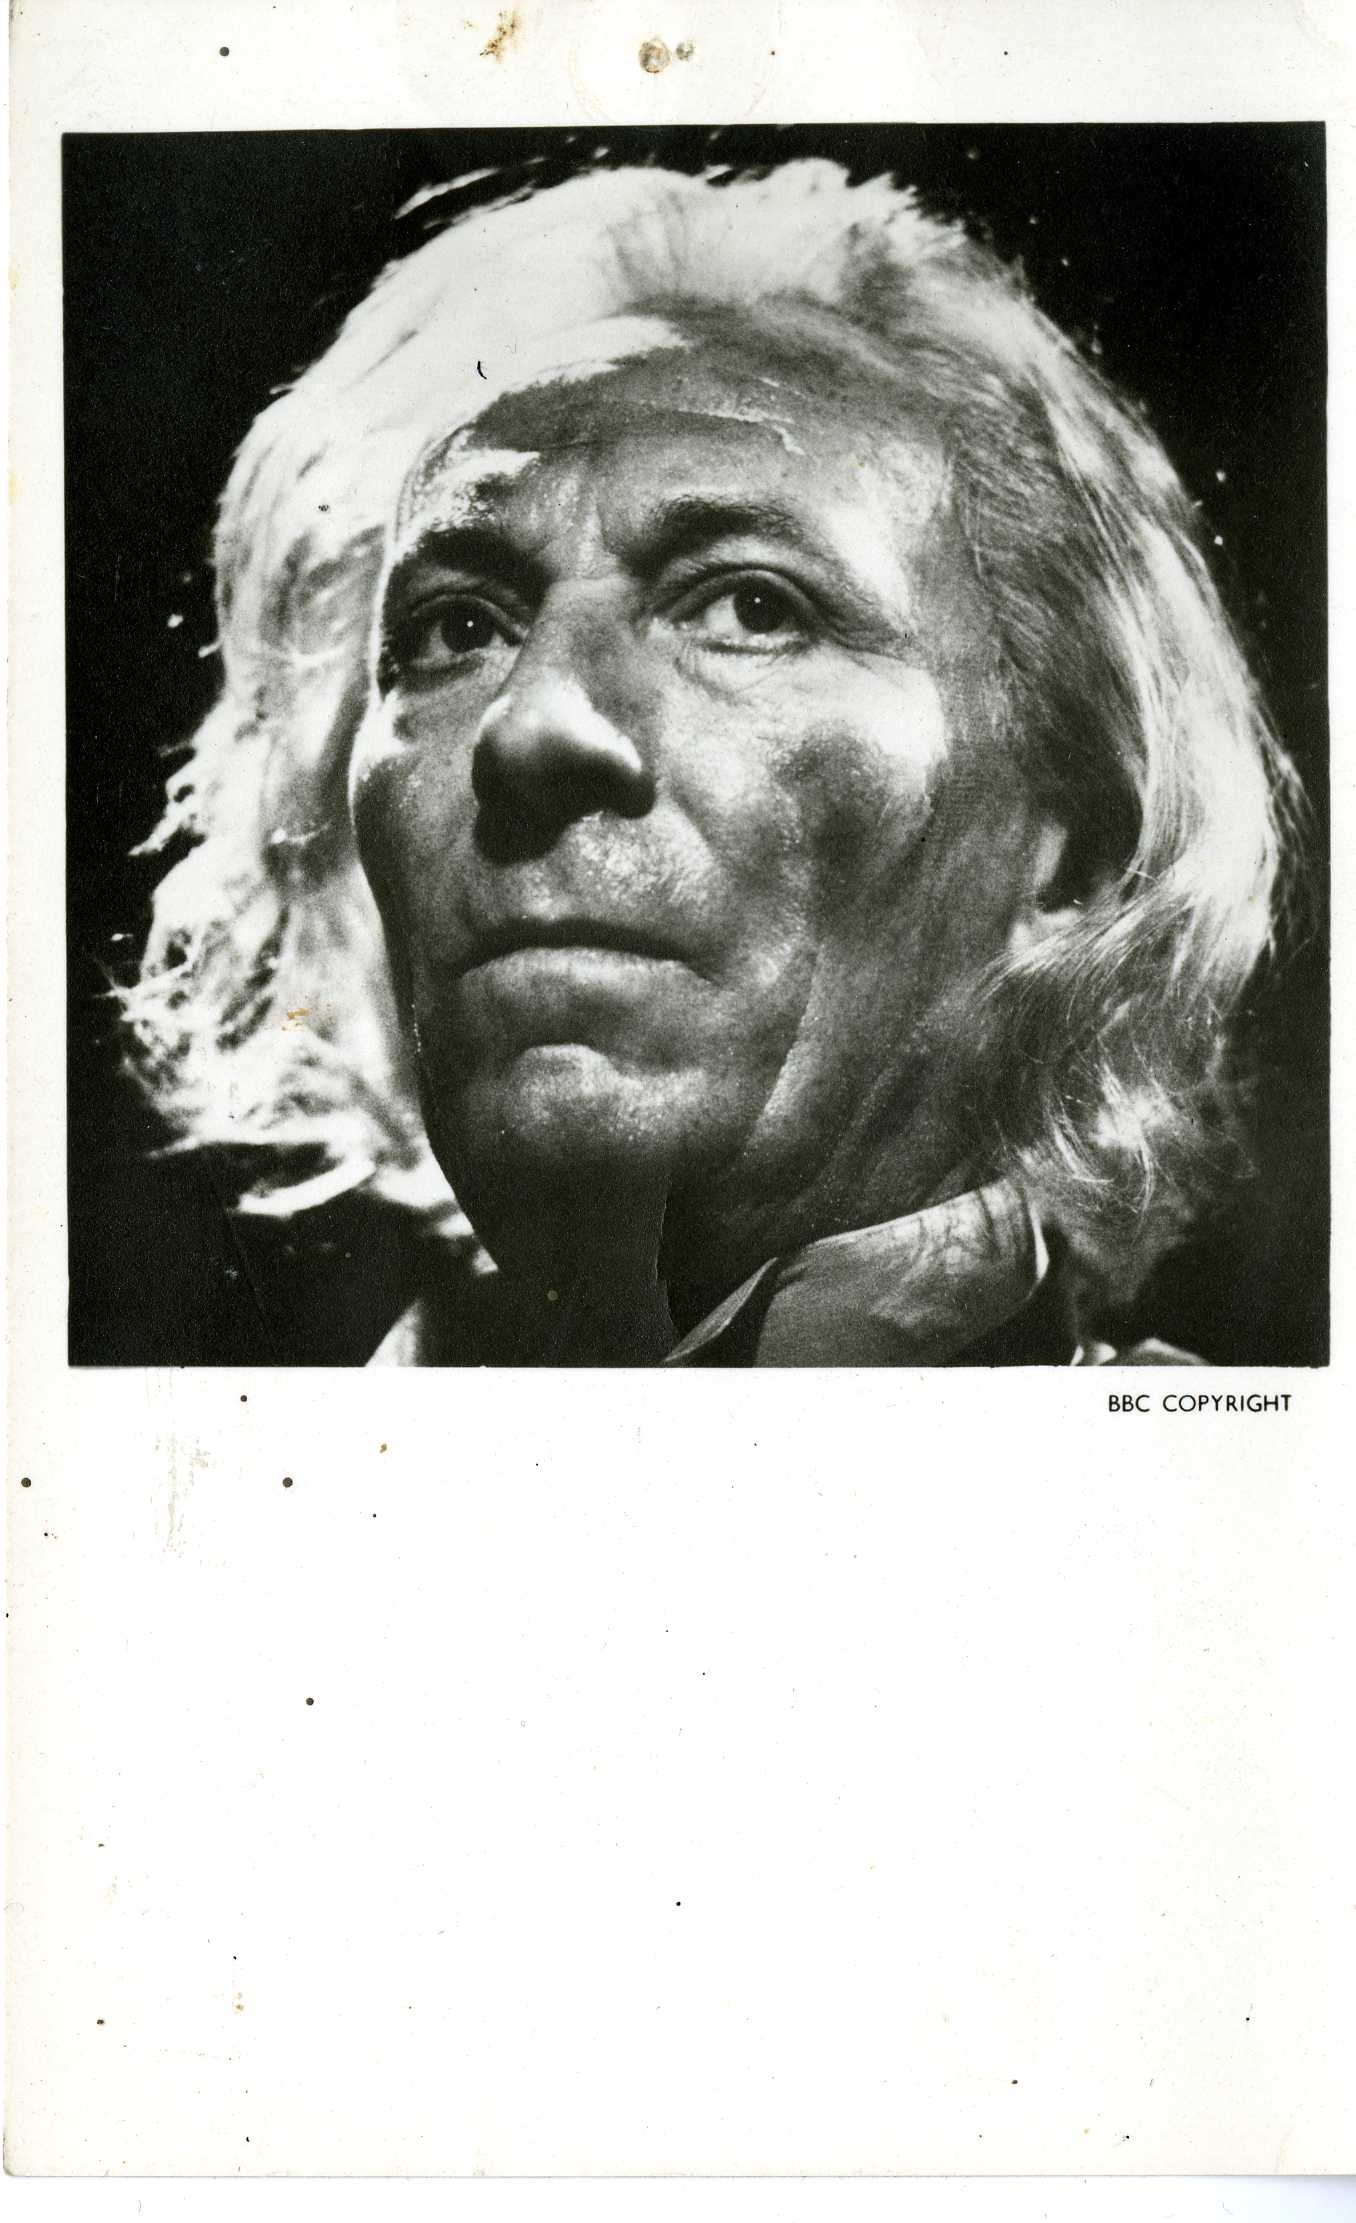 Early BBC Promotional Photo Card of William Hartnell